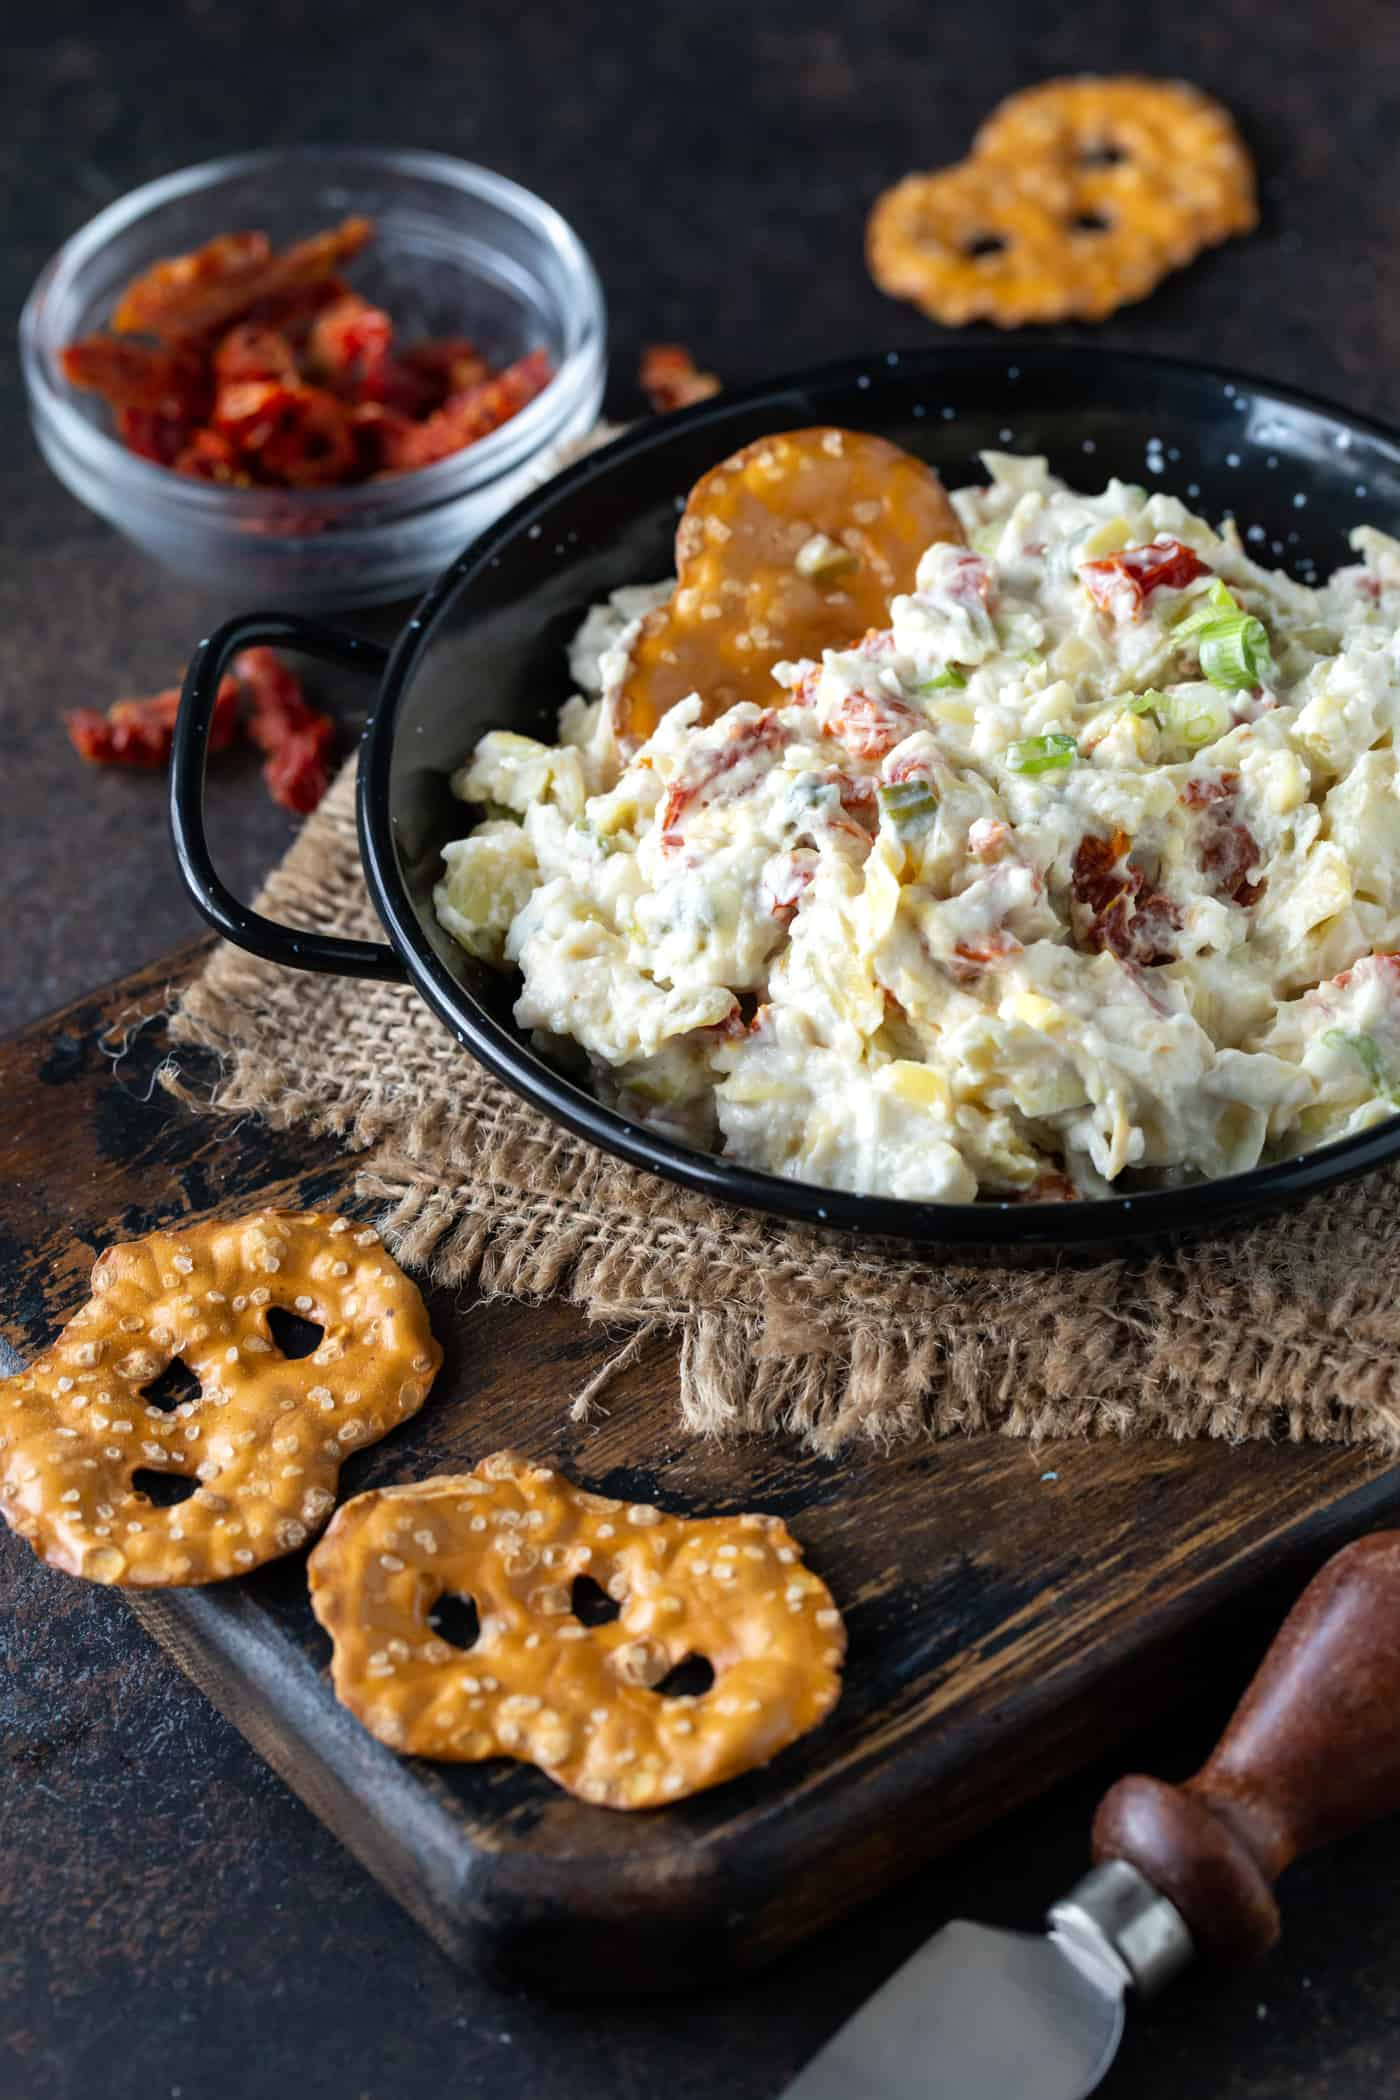 Asiago Dip in a black serving dish, garnished with green onions and serves with pretzels for dipping.